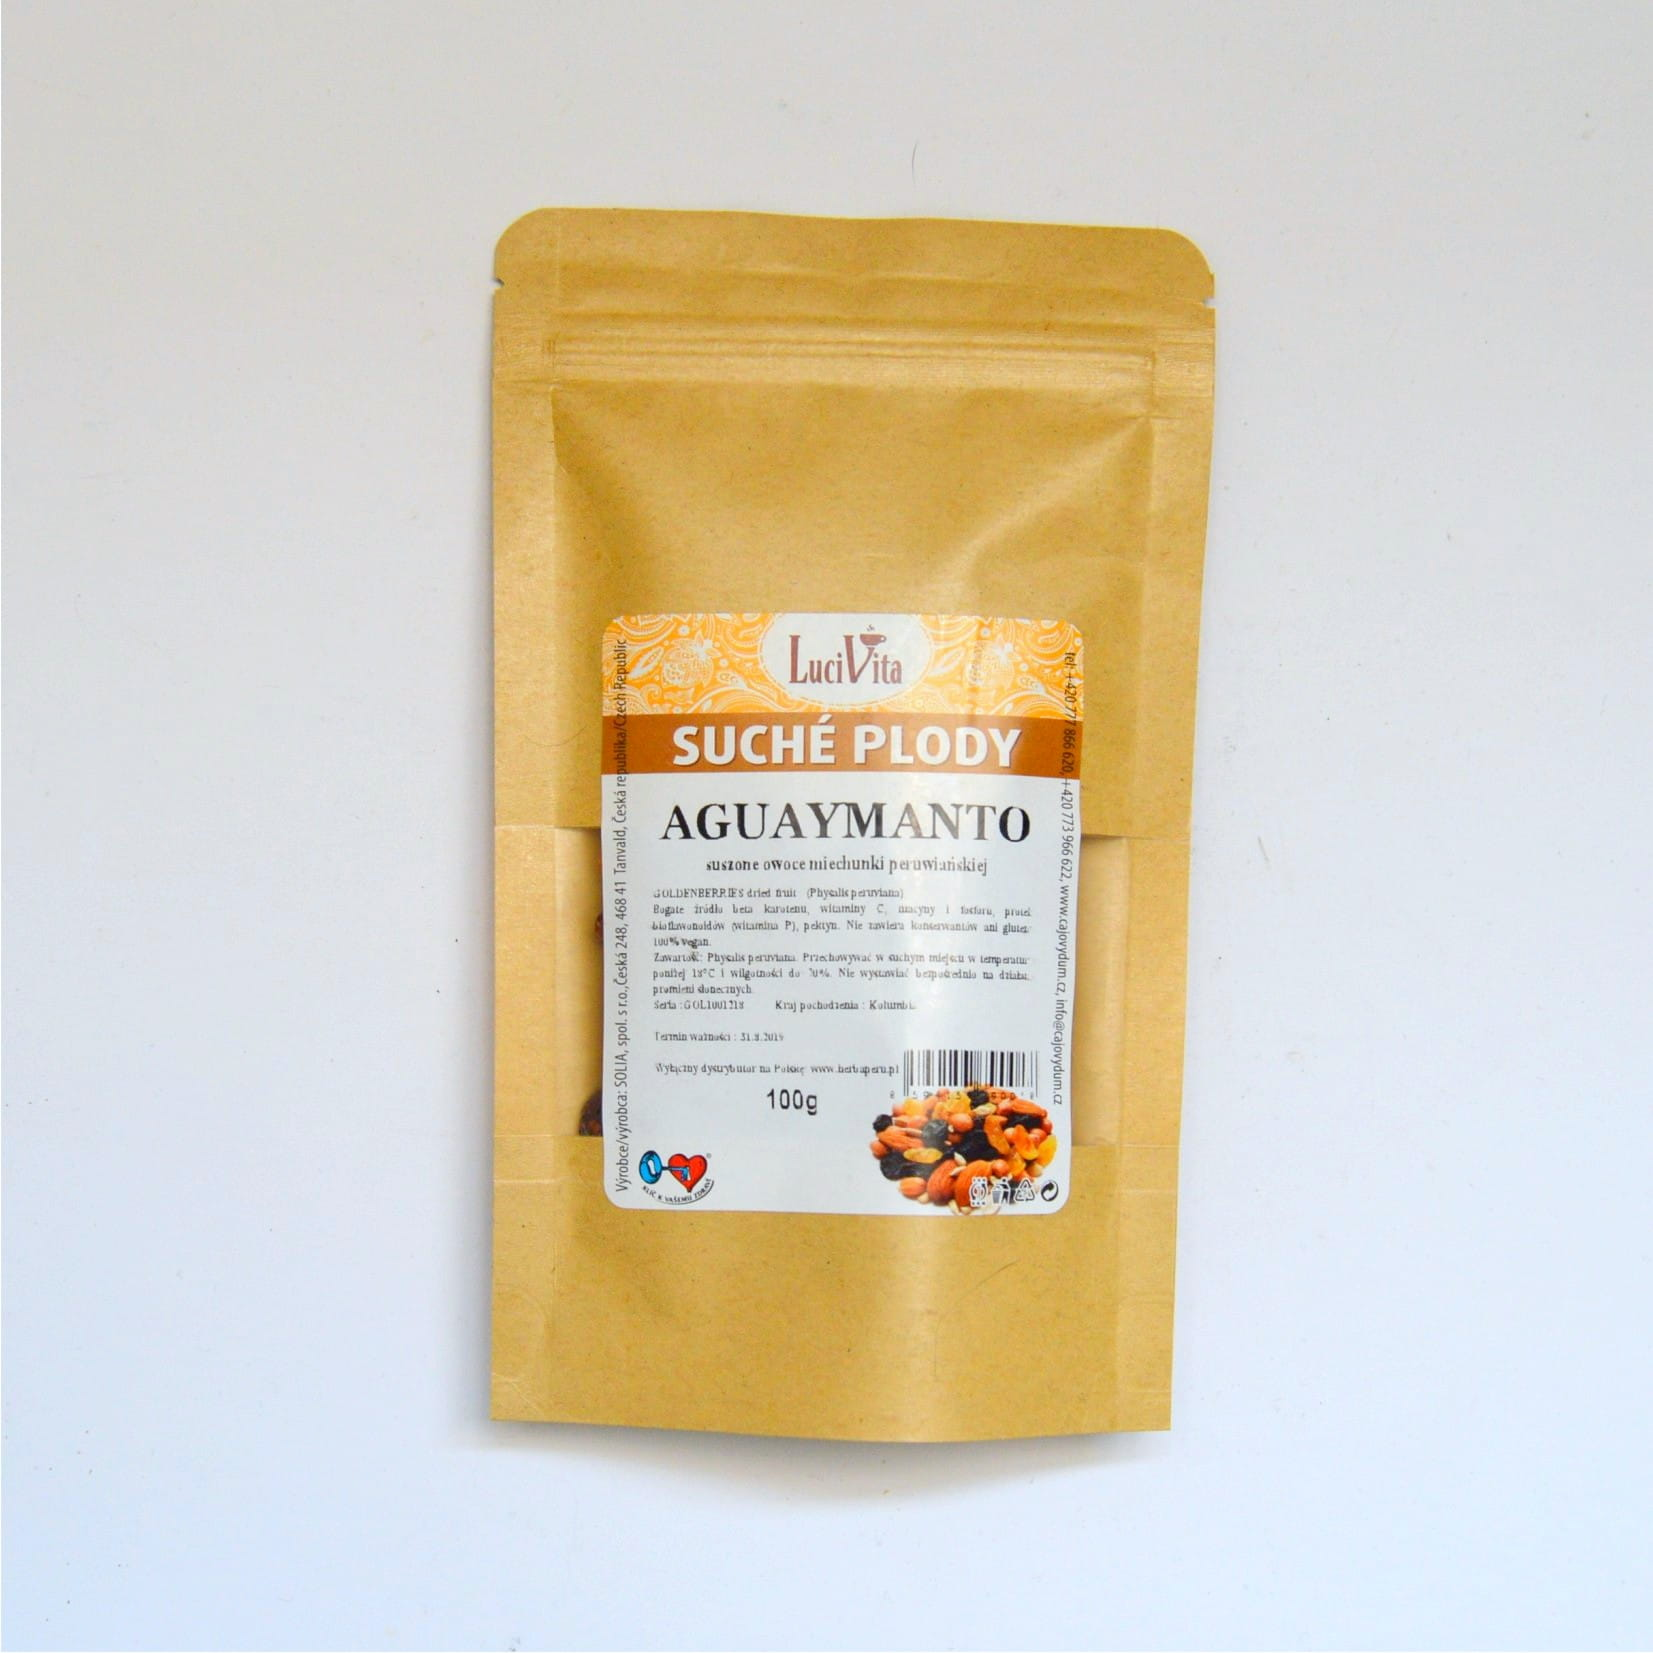 Goldenberries - Aguaymanto - 100g